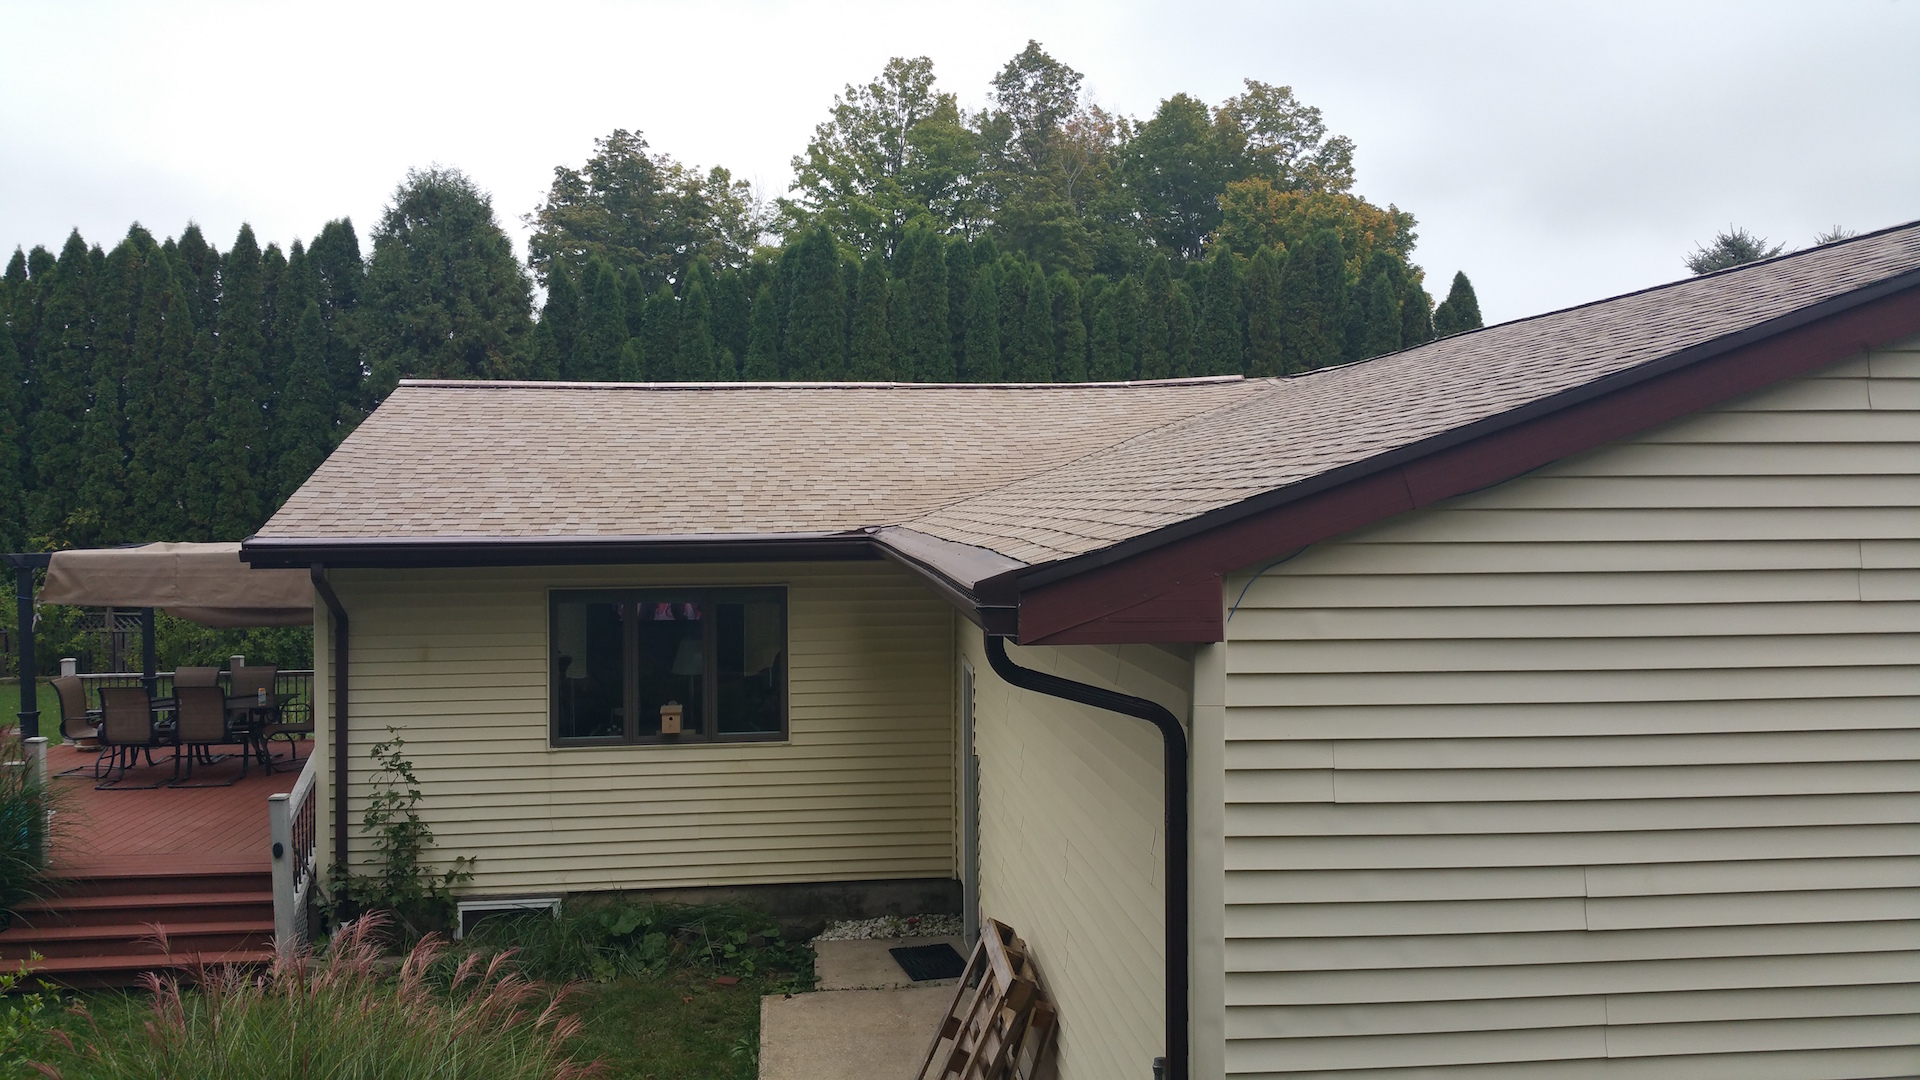 Dowagiac Michigan Seamless Gutter Amp Gutter Topper Project